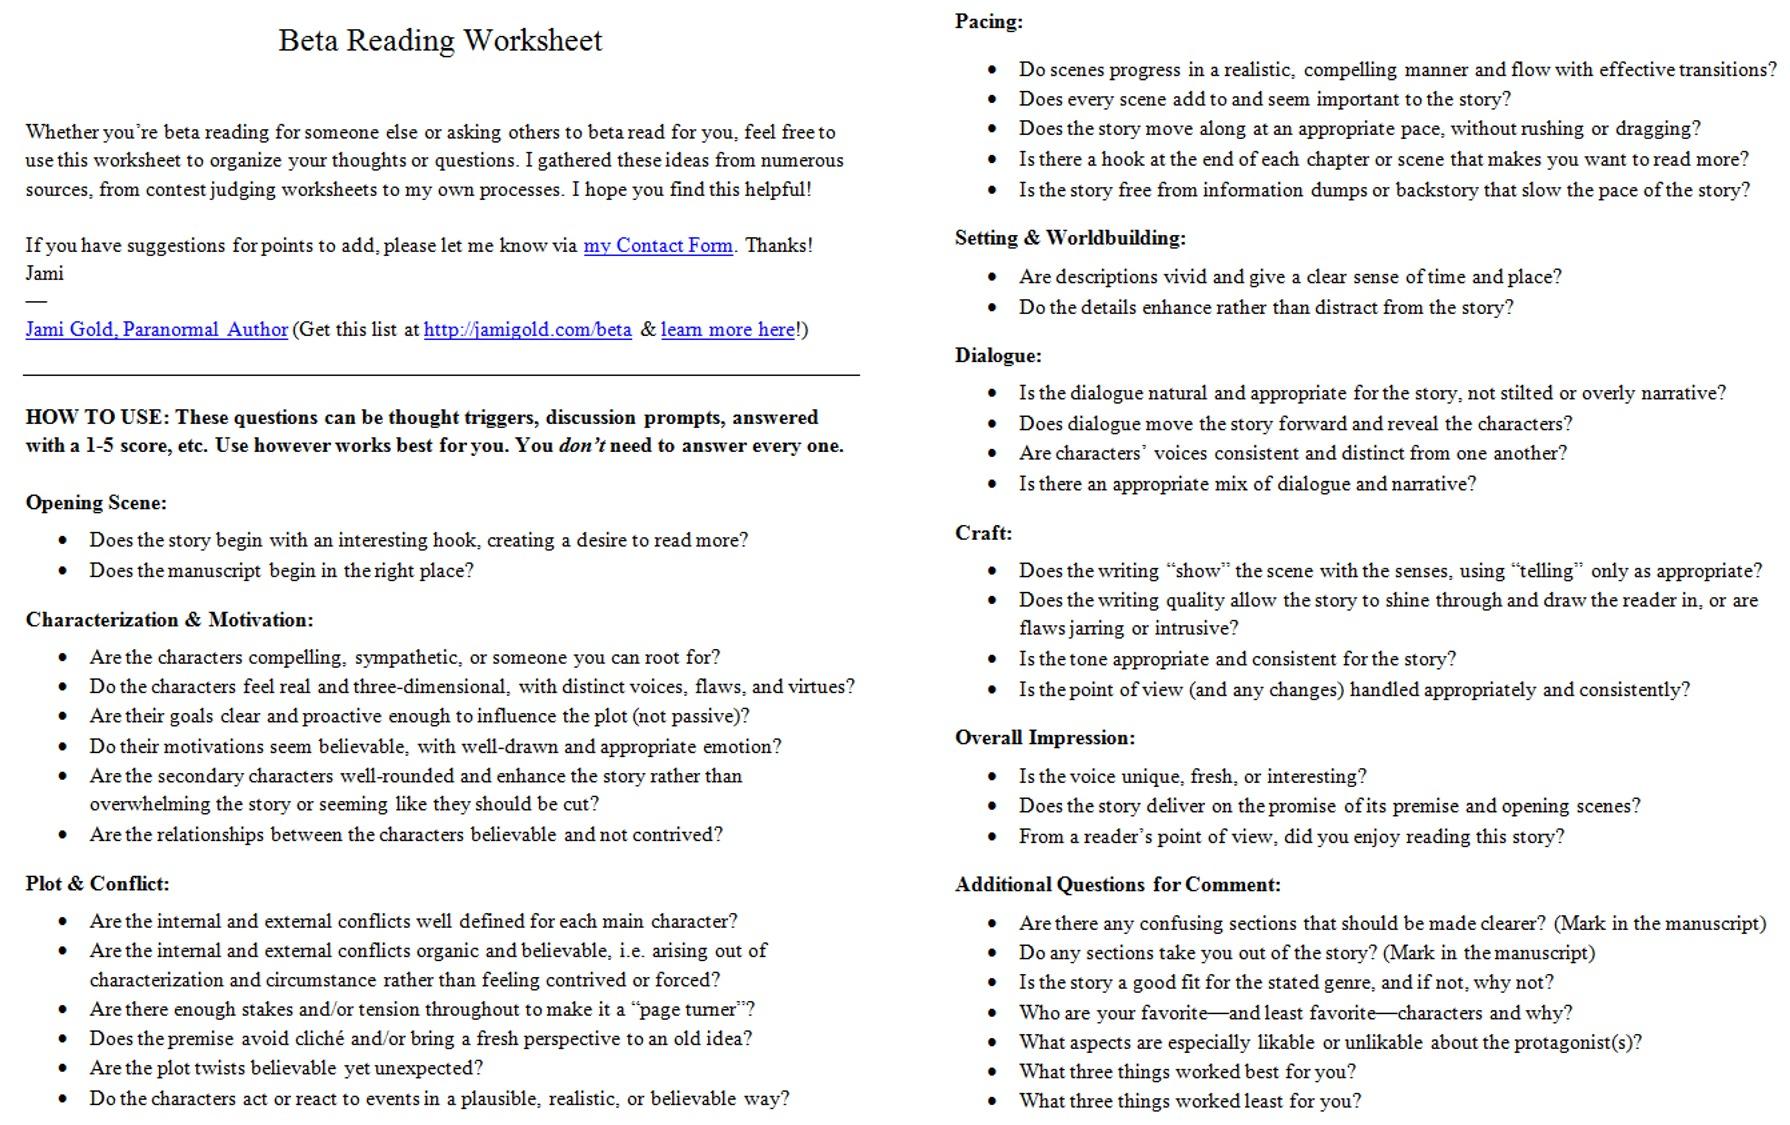 worksheet Your Vs You Re Worksheet introducing the beta reading worksheet jami gold paranormal author screen shot of two page worksheet